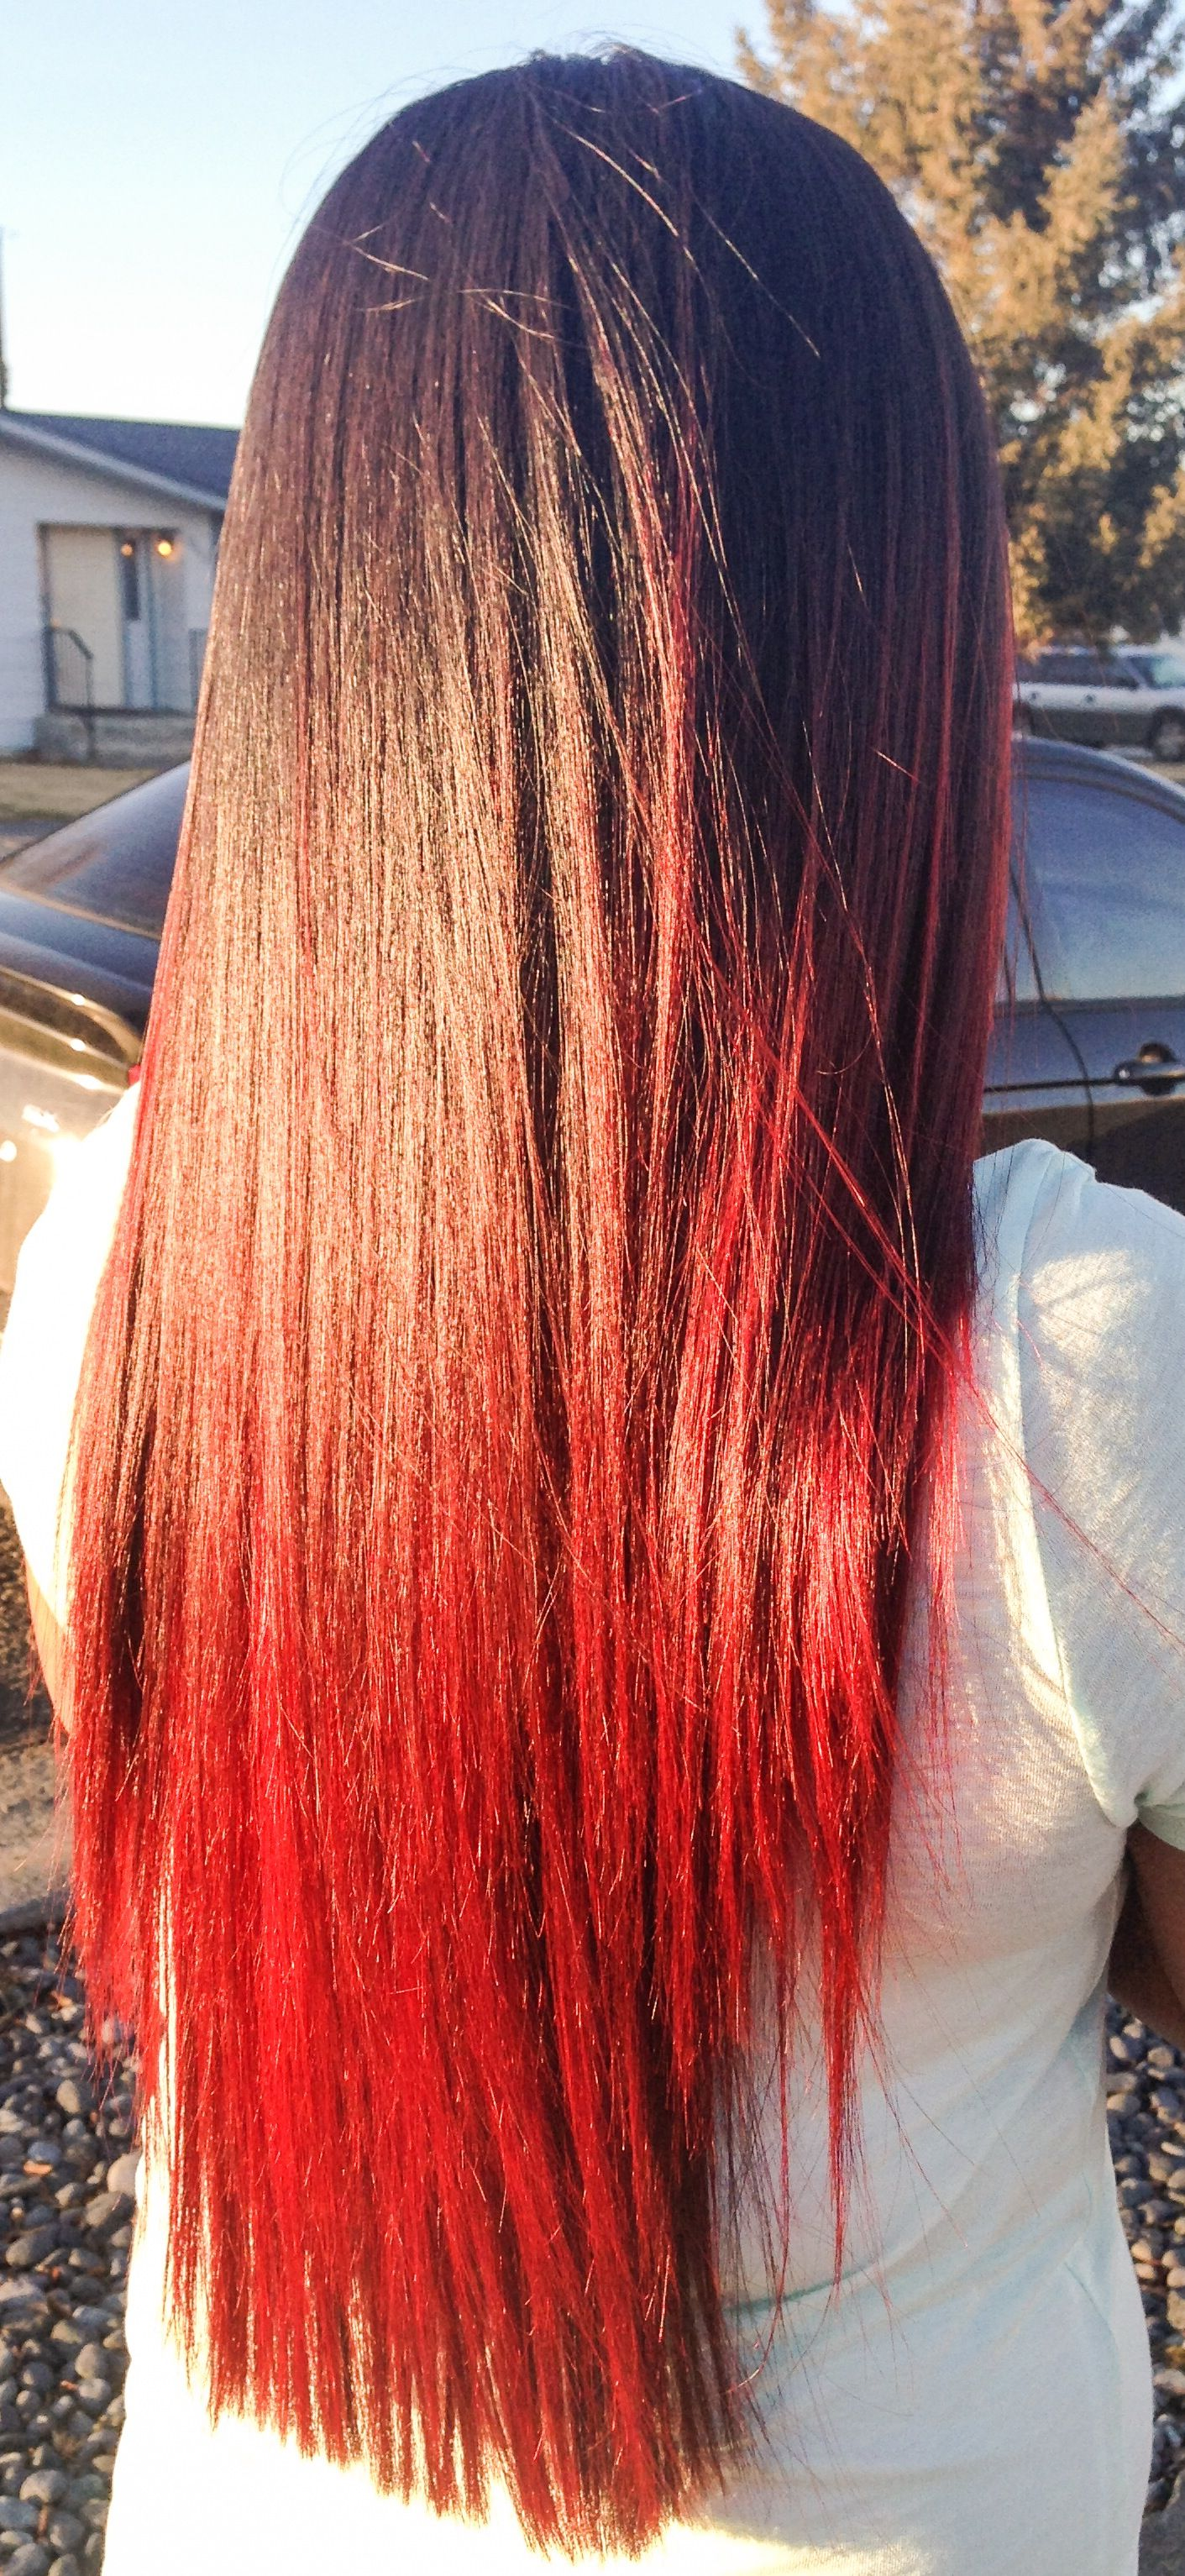 Brown Hair With Red Tips Everything Hair Pinterest Brown Hair